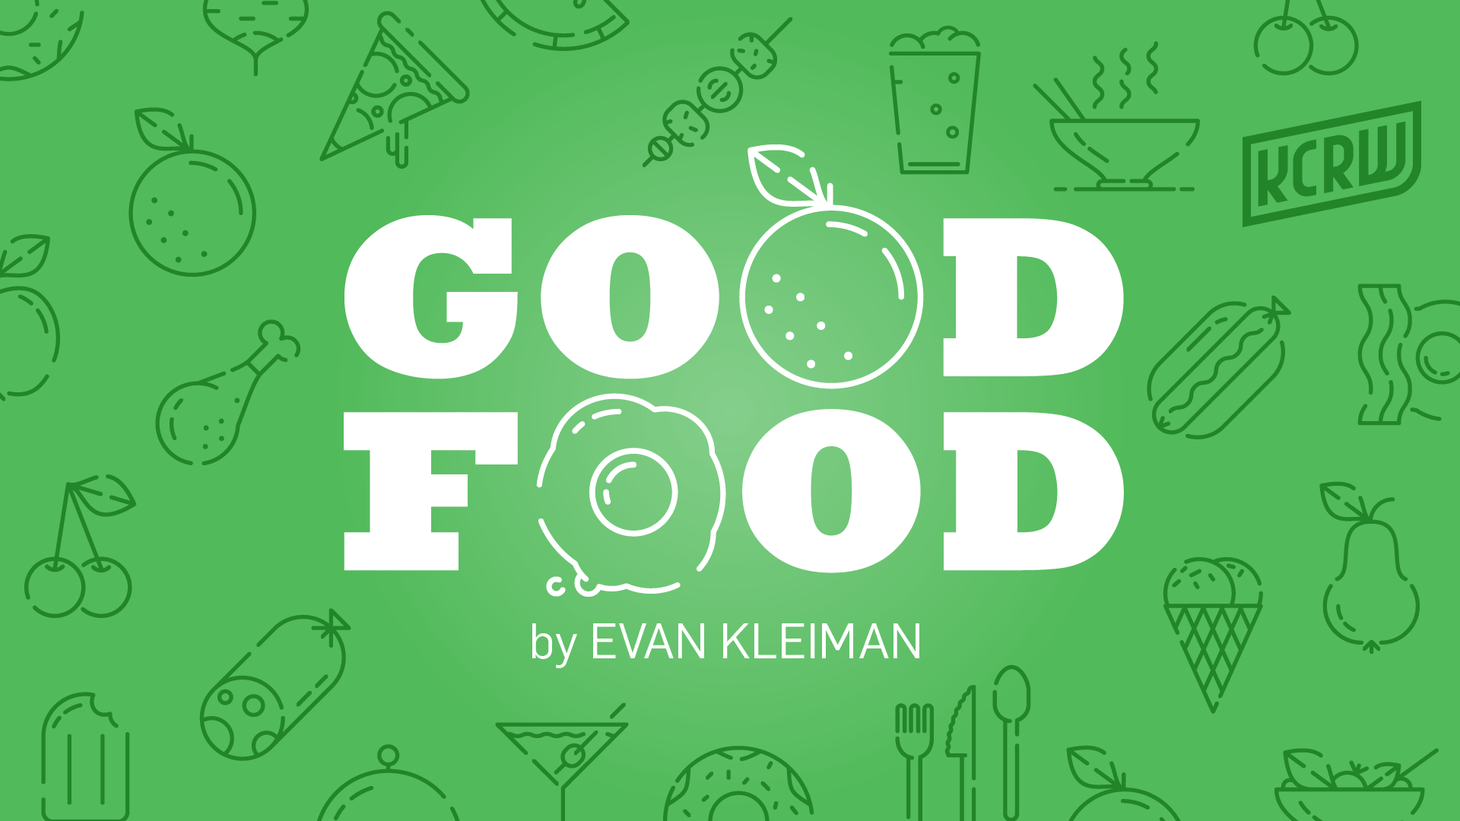 Evan Kleiman visits new Thai food restaurants with local expert Jet Tila, and explores the impact of coffee on the development of Western civilization with Stuart Allen. We talk with a woman who loves Italian food so much she's been living in Italy for the past 26 years. We'll also learn about some great summer wine releases to try from our wine guru, Stacie Hunt, and follow Stewart Allen to see if coffee gave birth to the rise of an enlightened Western civilization.